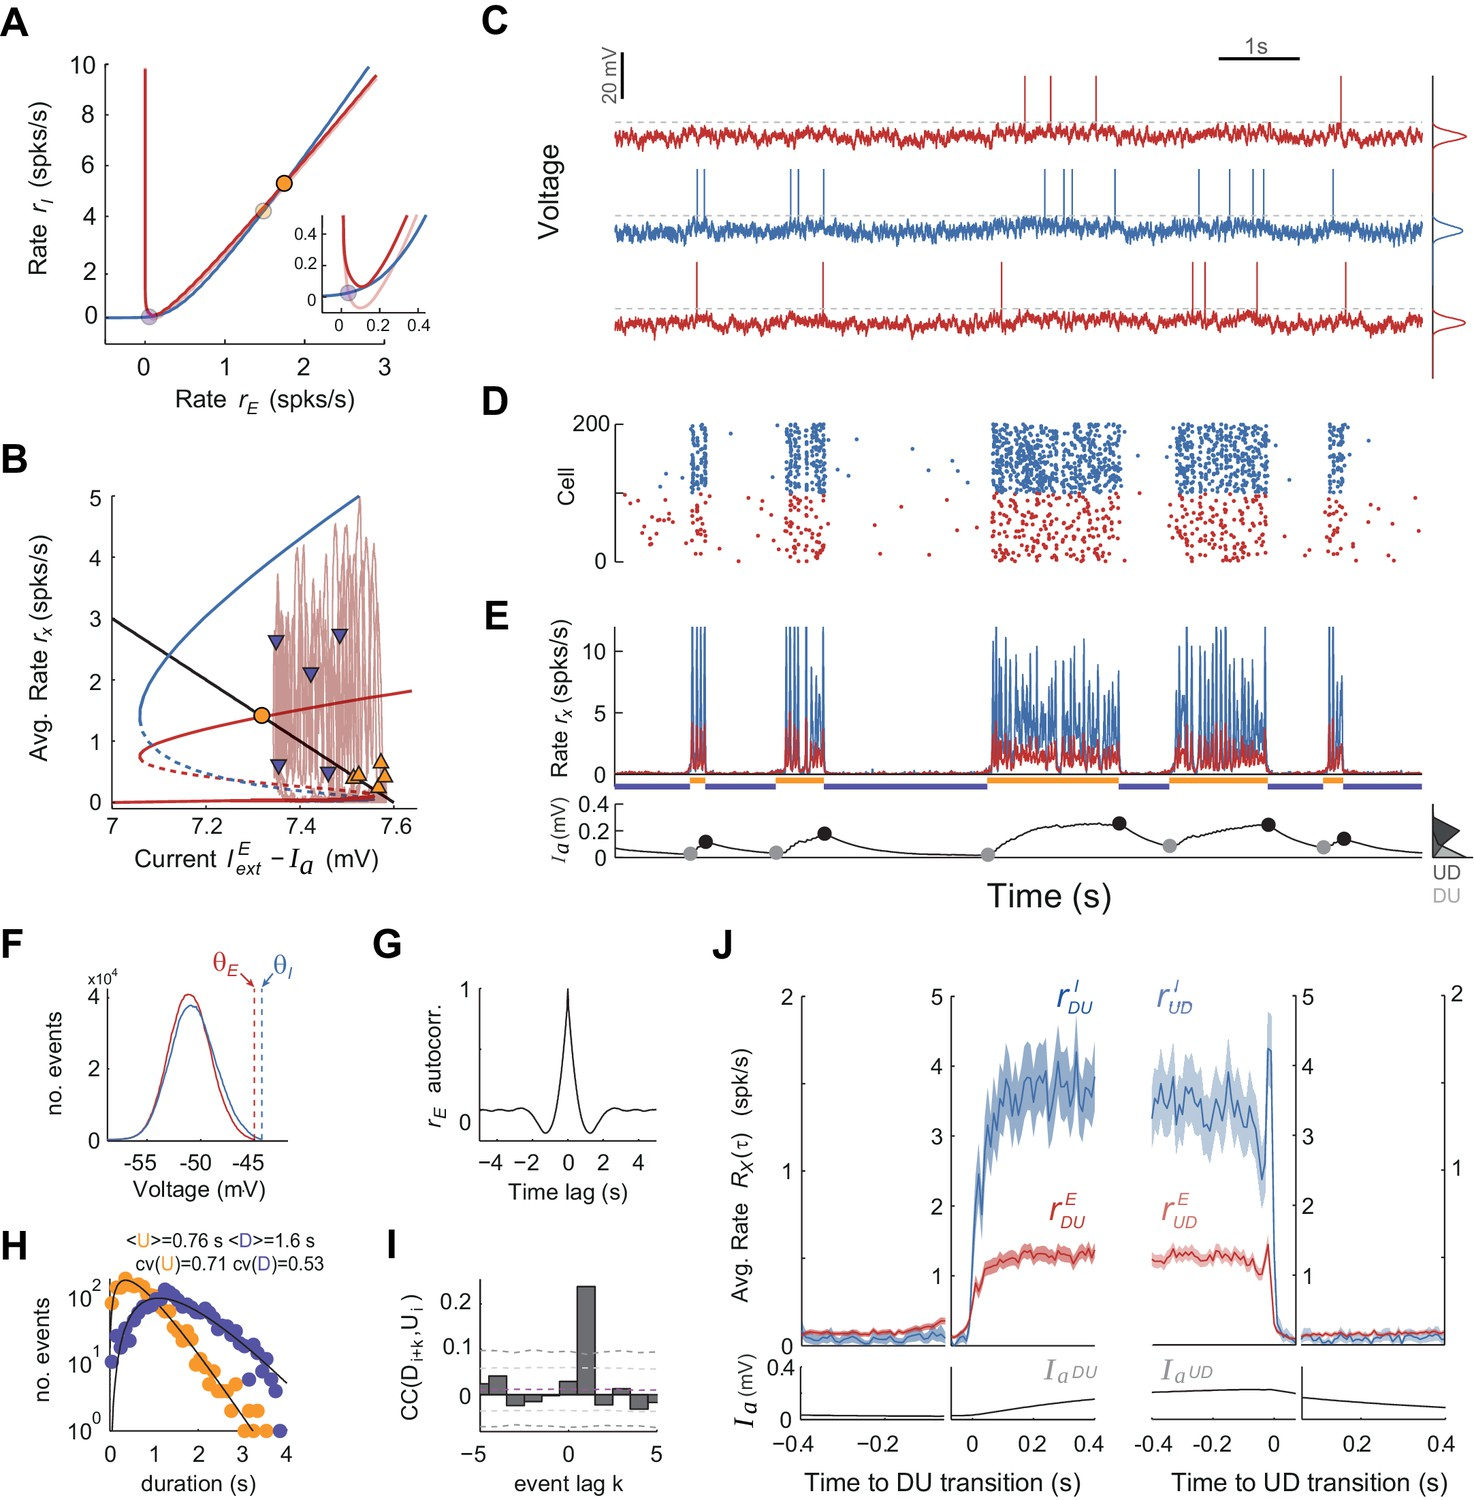 Up Down Cortical Dynamics Reflect State Transitions In A Bistable Counter 4 Bit Timing Diagram And The Ei Spiking Network Model Caused By Independent Gaussian Noise